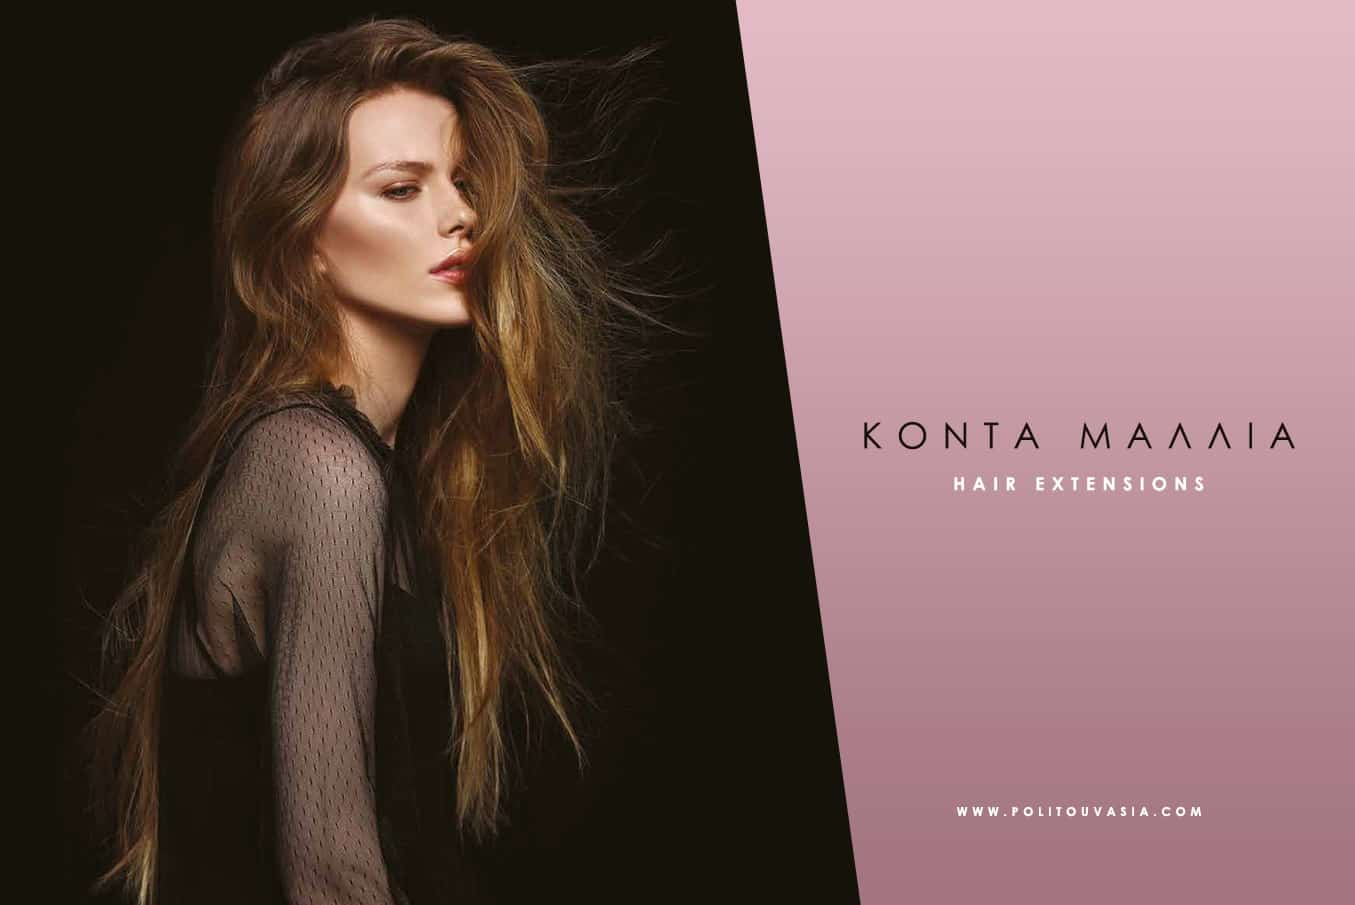 Hair extensions σε κοντά μαλλιά